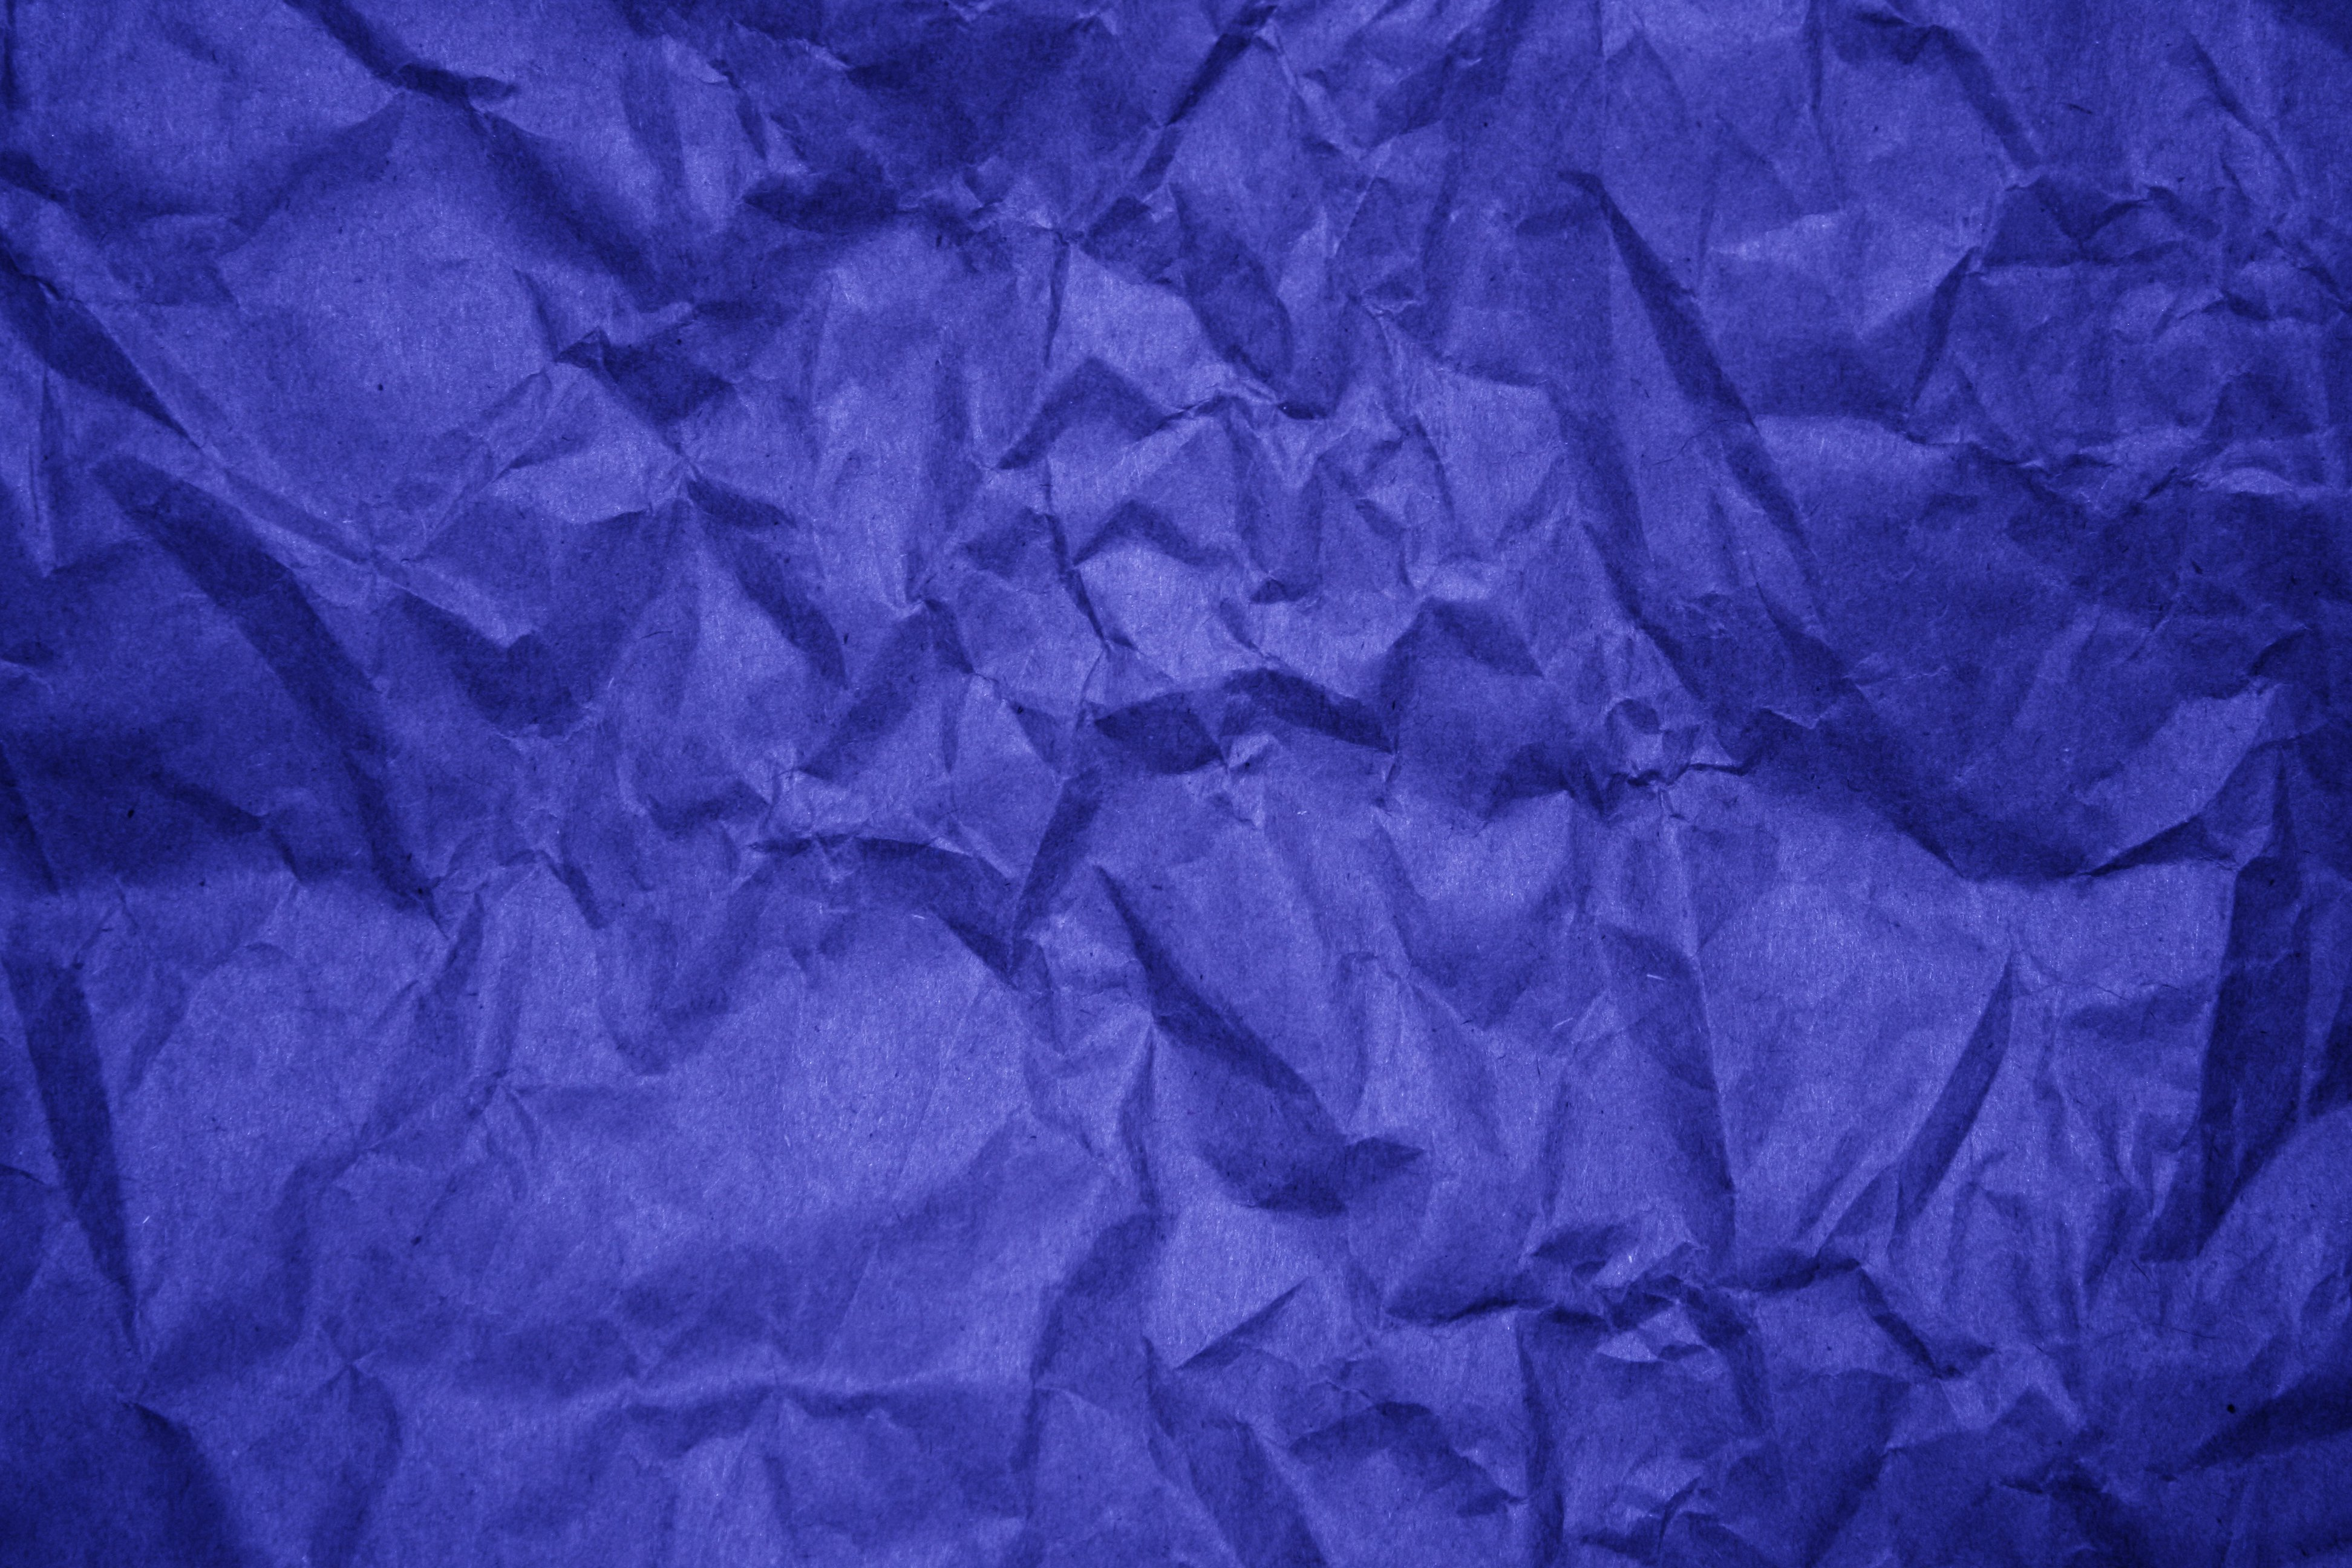 blue wrinkled paper texture - photo #24